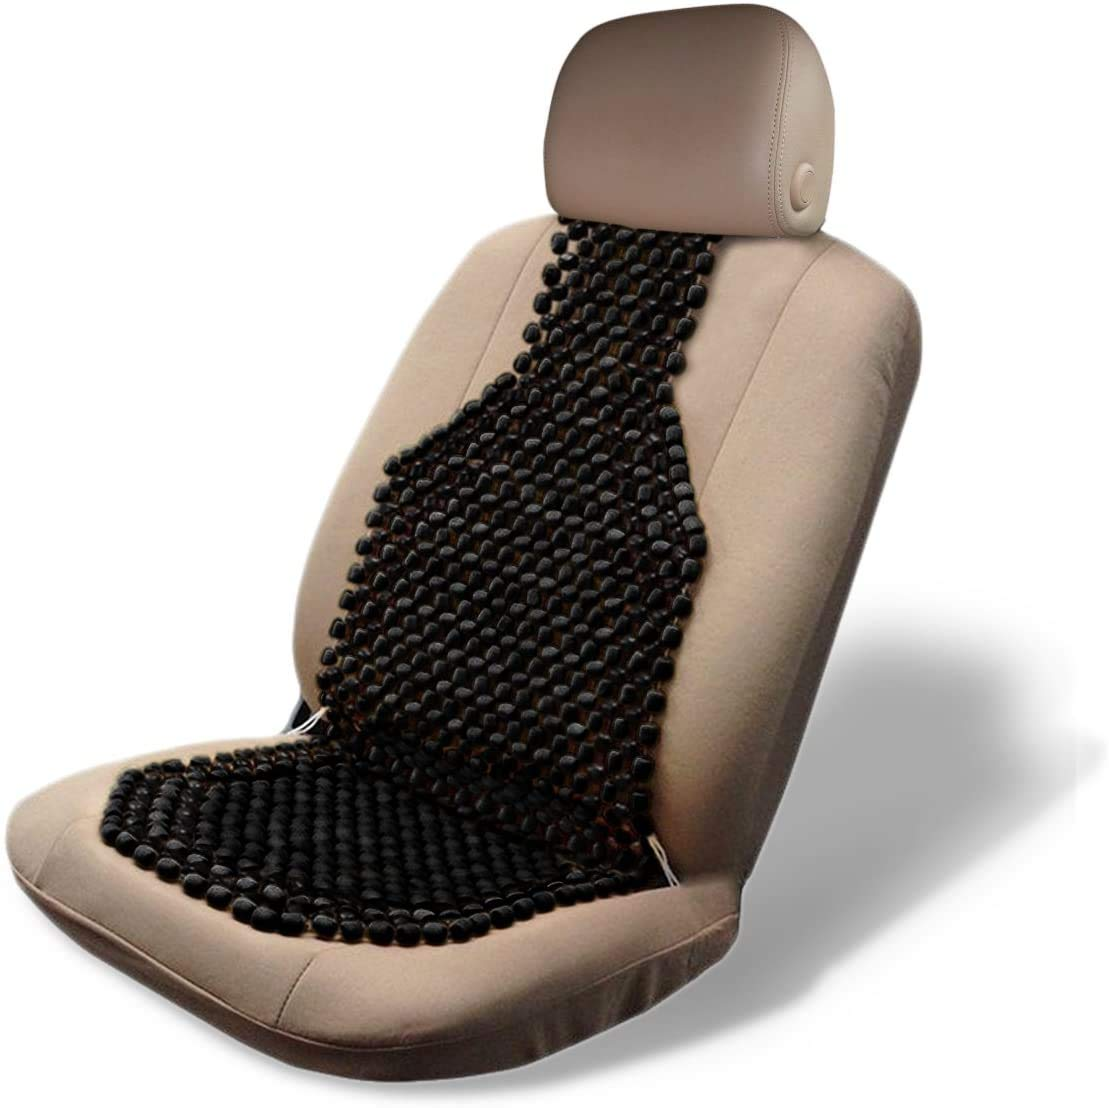 Zone Tech Wood Beaded Seat Cushion - Black Premium Quality Car Massaging Double Strung Wood Beaded Seat Cushion for Stress Free All Day!